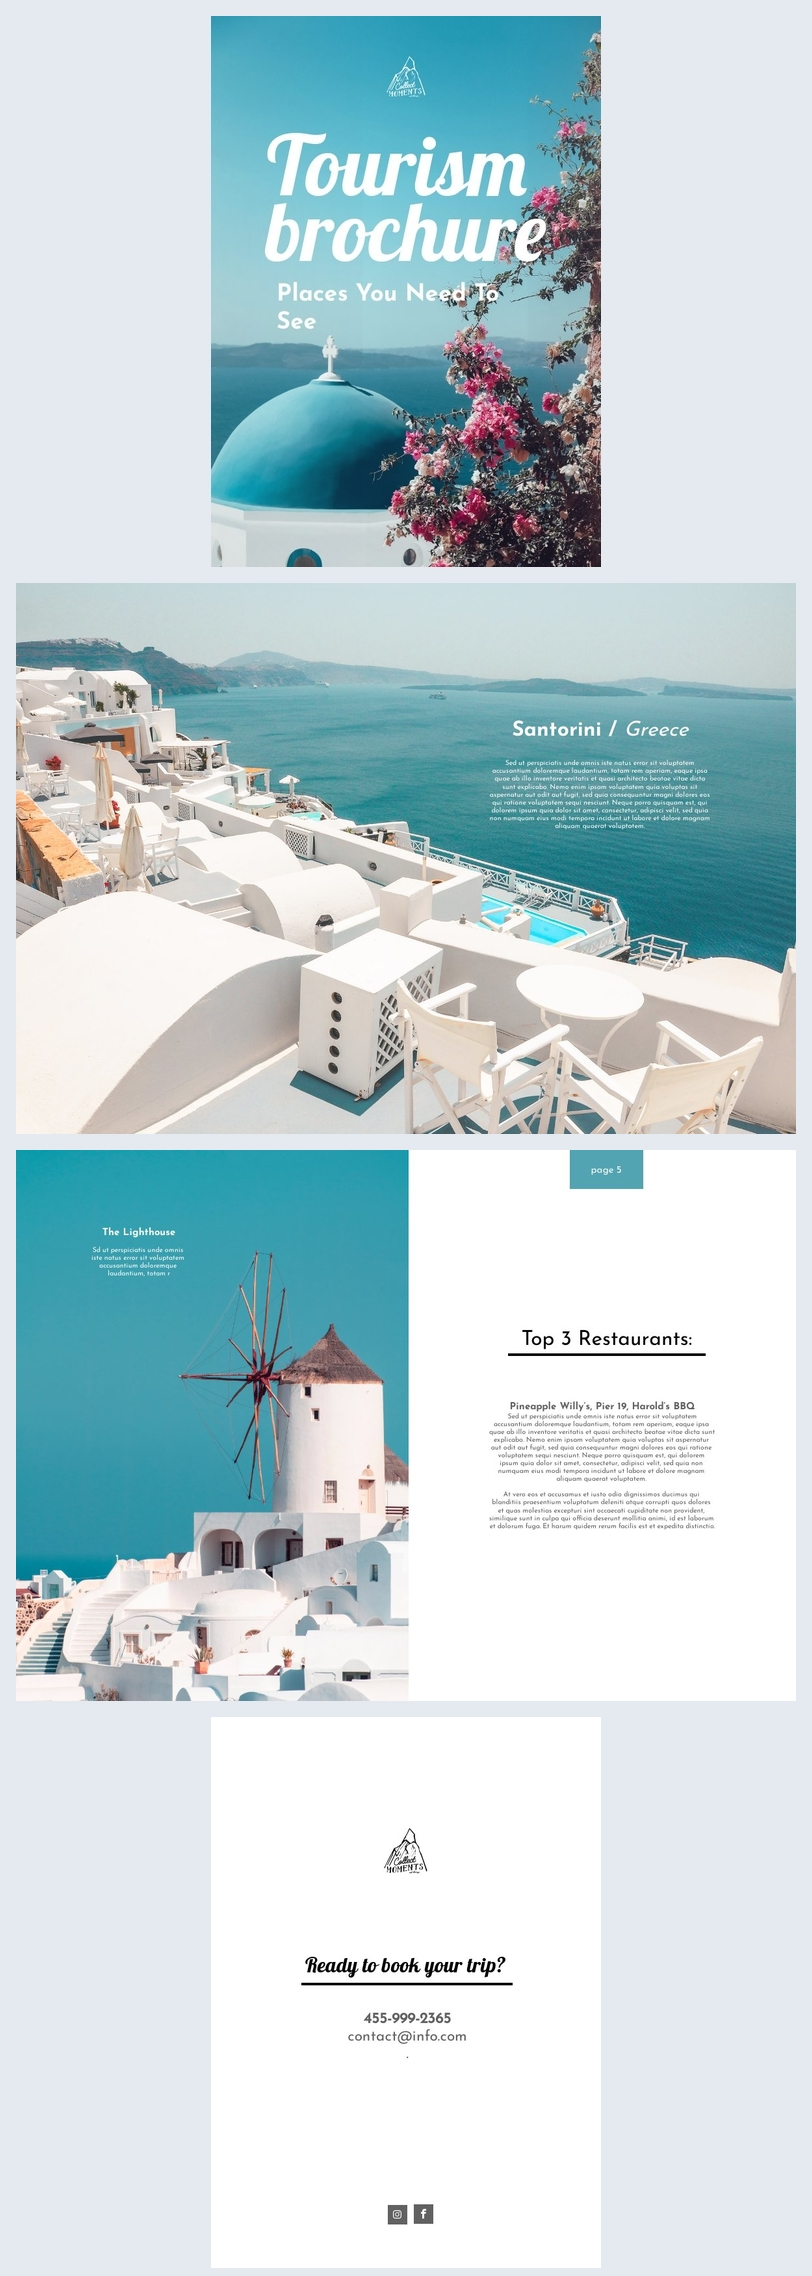 Blue Sea Tourism Brochure Example